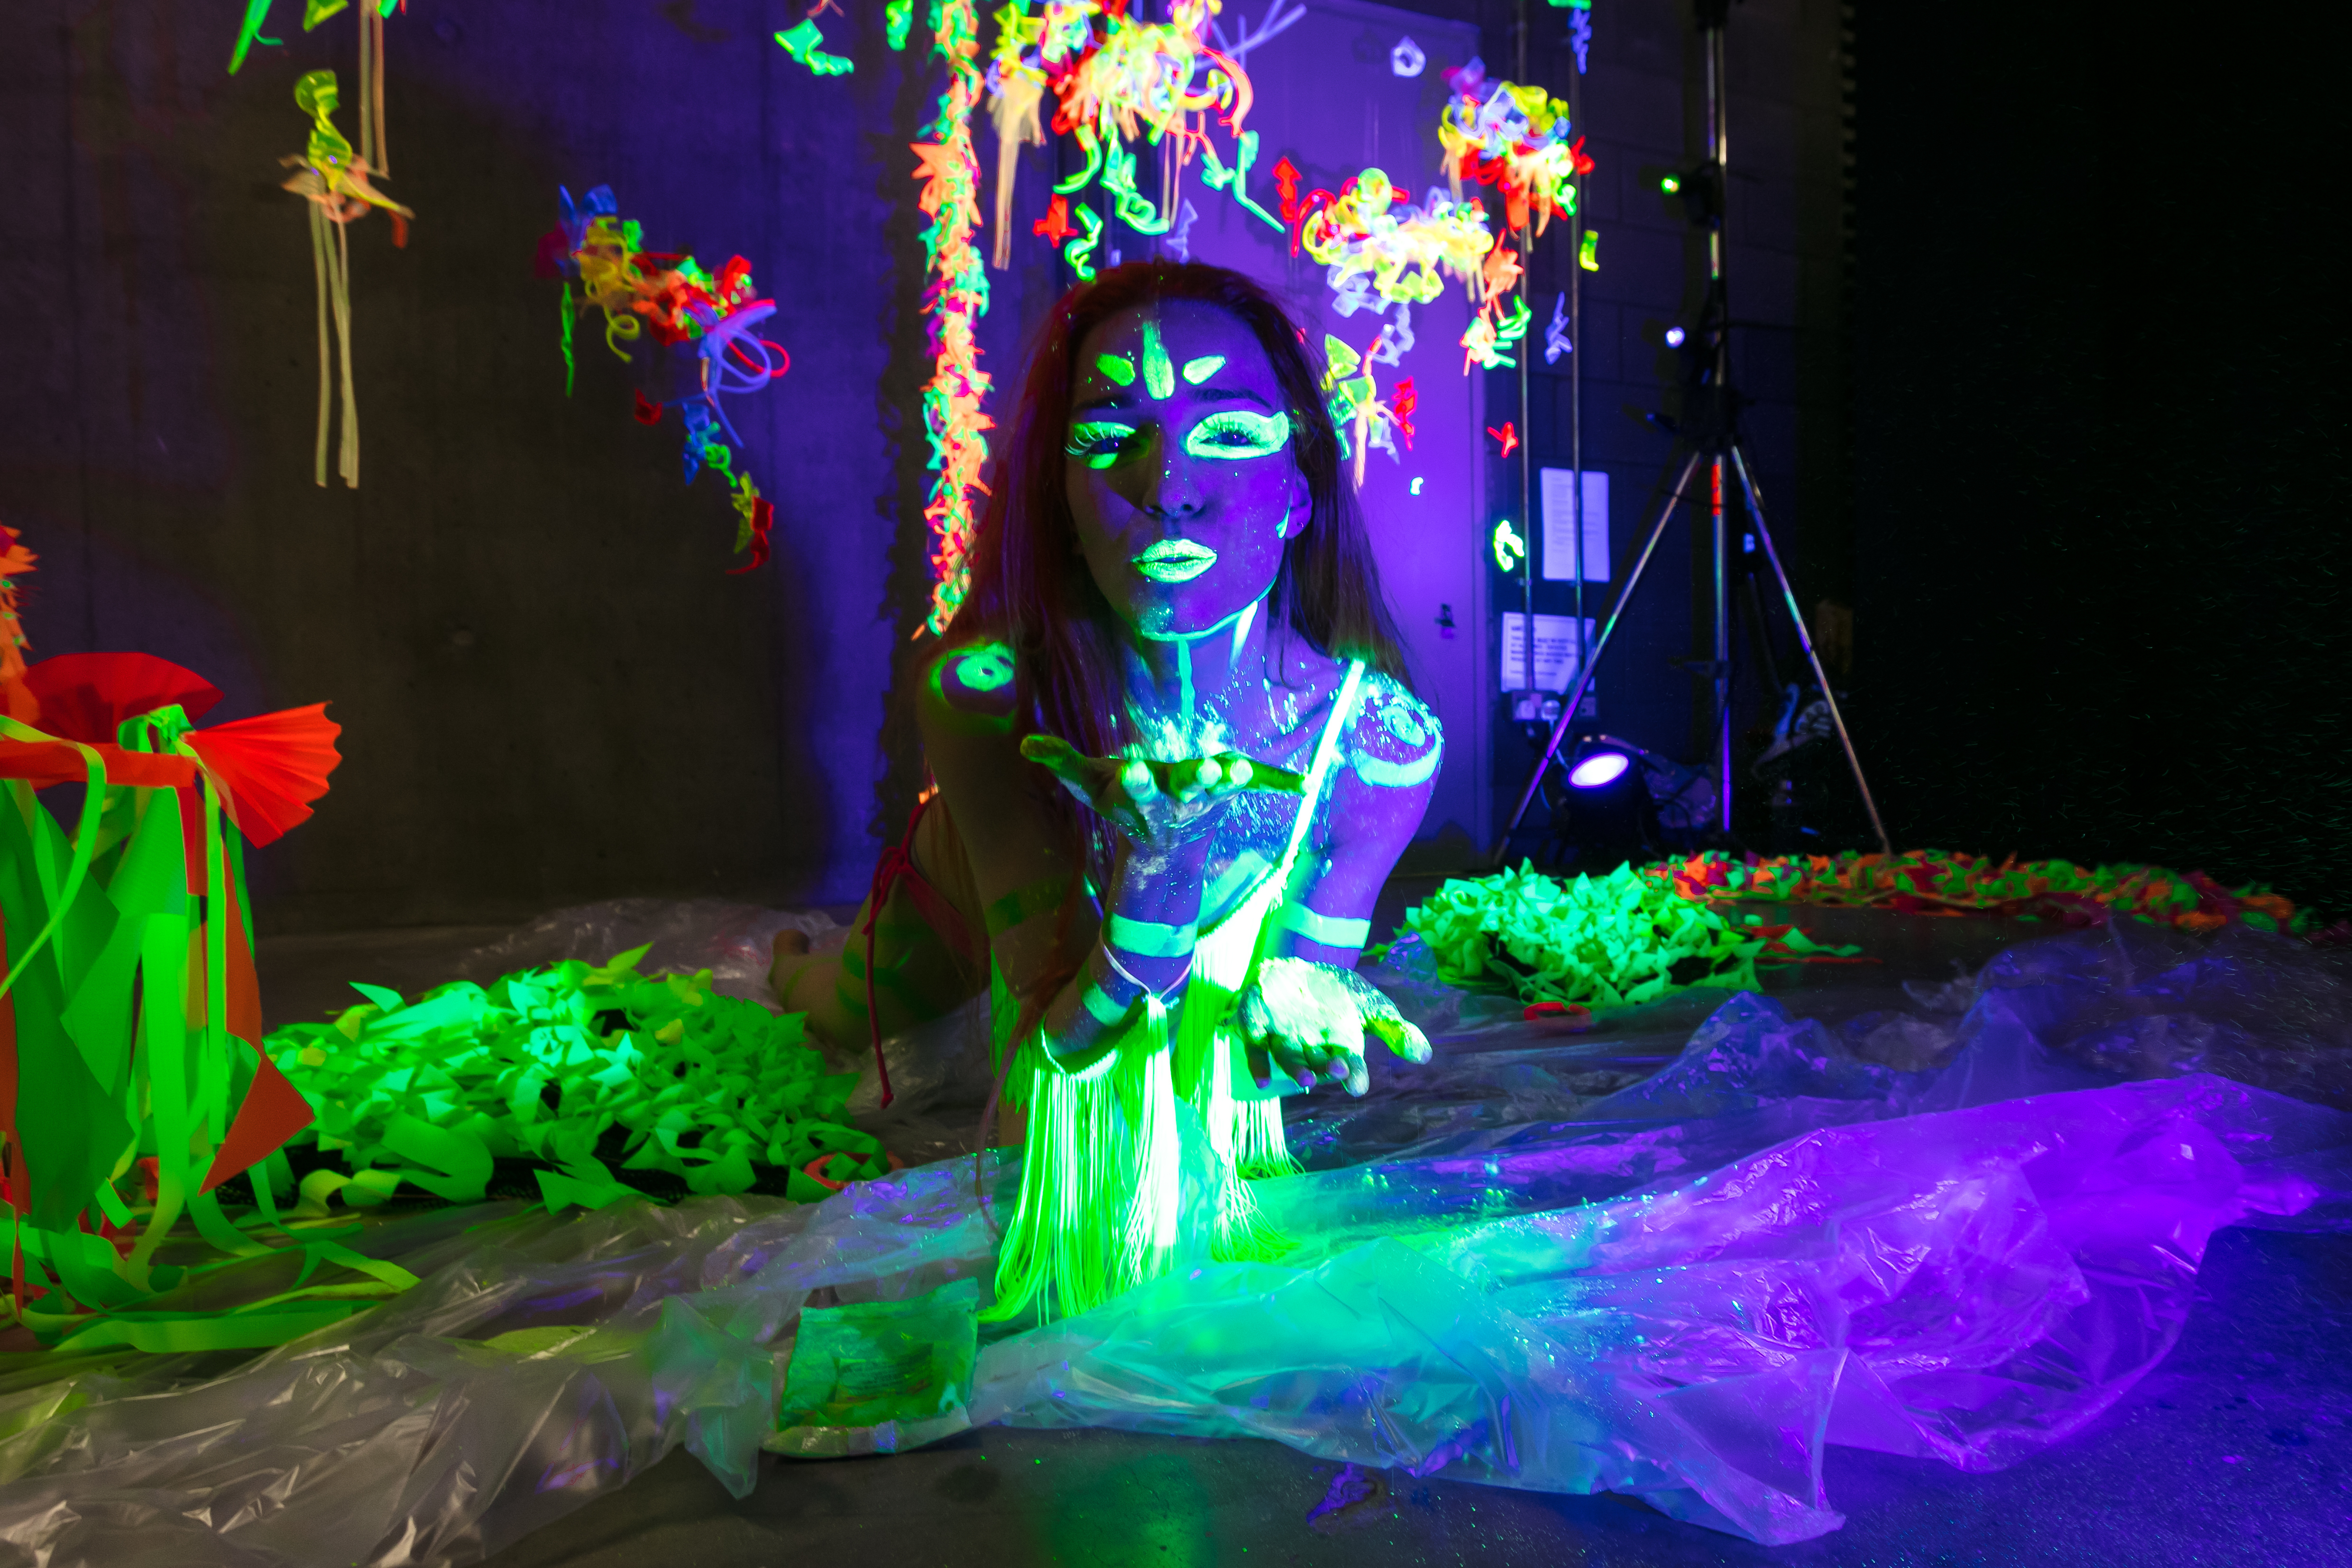 Darkened room with person covered in glow-in-the-dark decoration